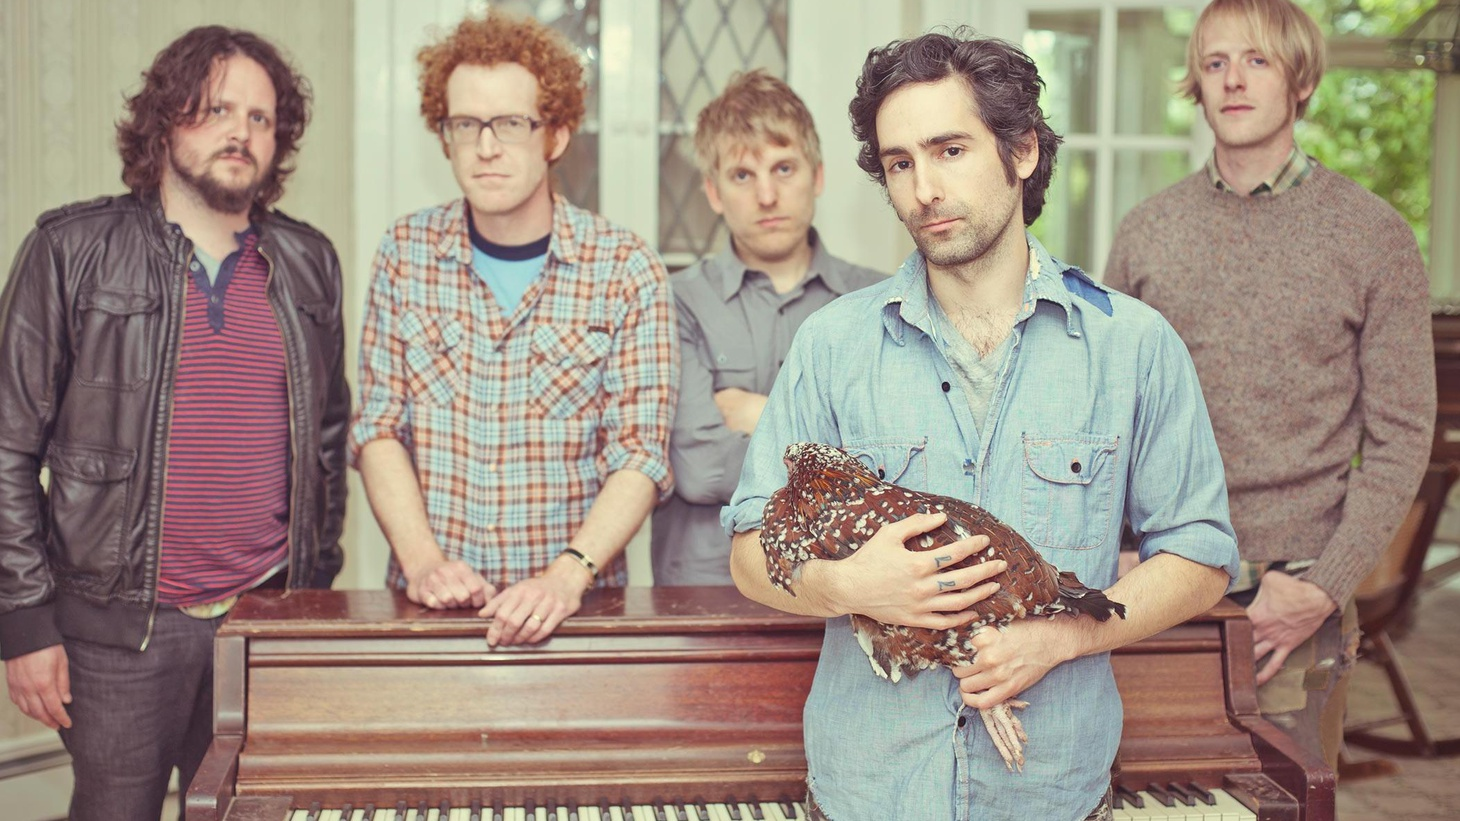 Blitzen Trapper reach back into the arsenal of 70's country and southern rock in their music, yet find a way to tell their own tales of too much whiskey and loving and leaving....